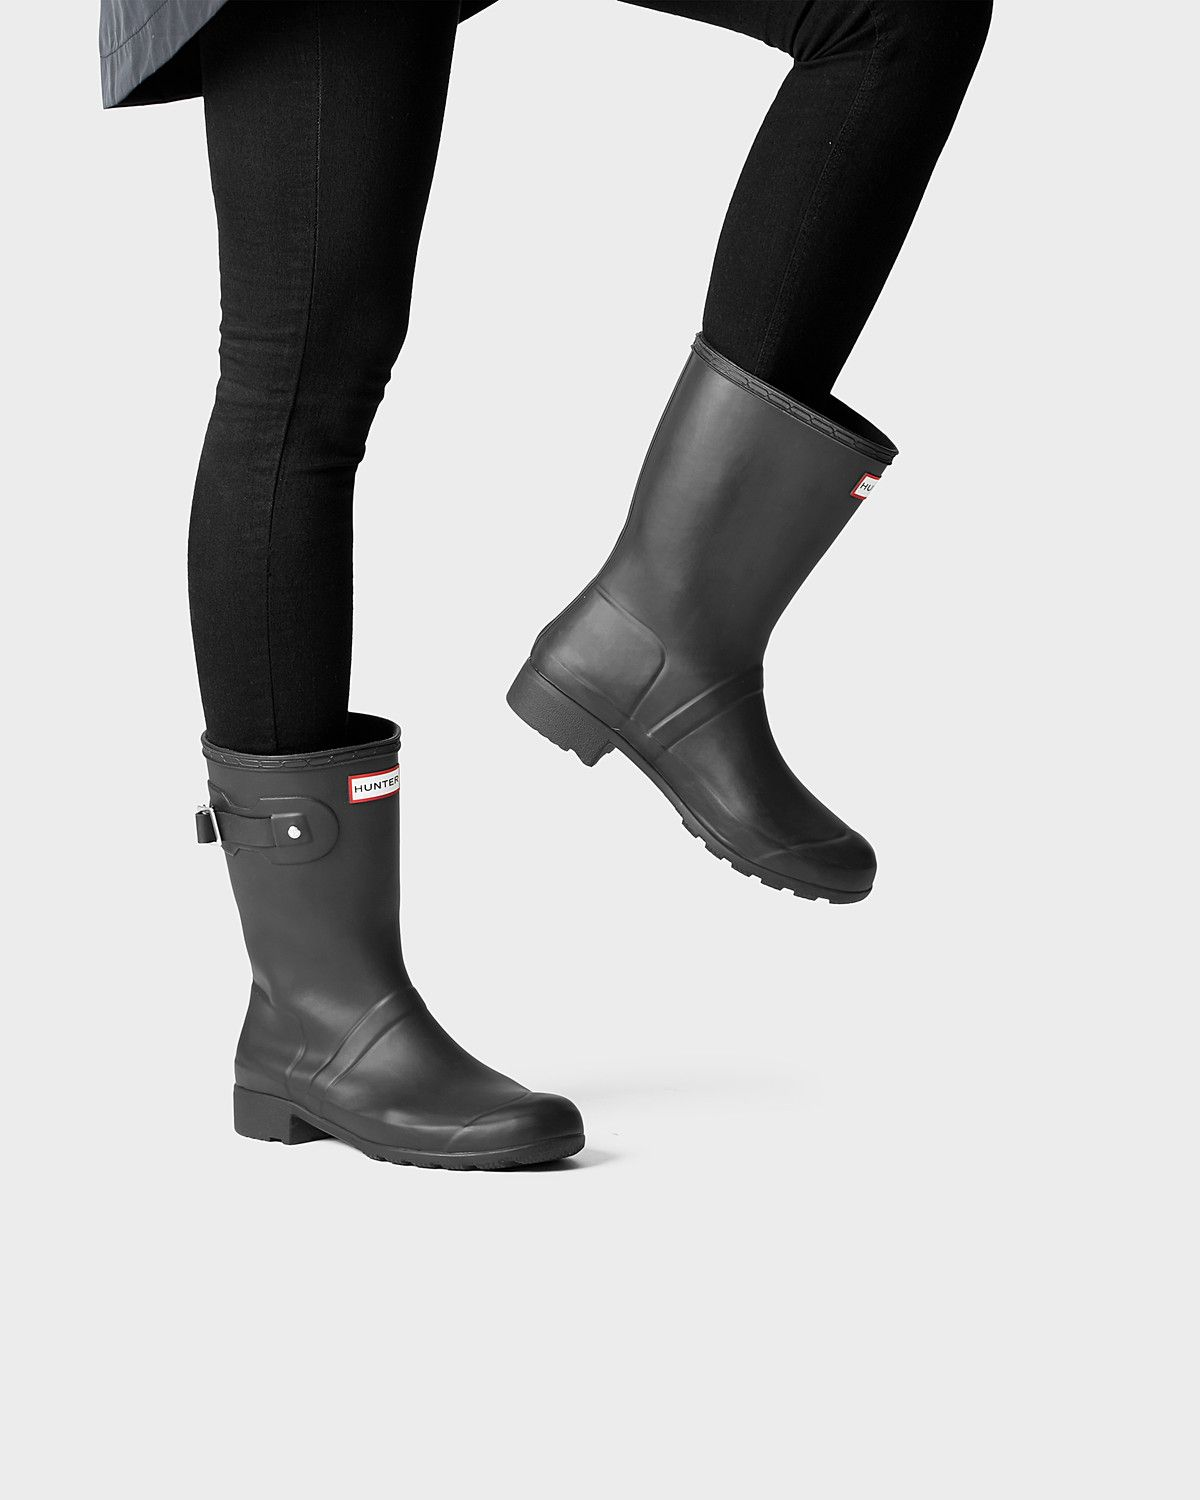 a76fc7a30 Women's original tour short rain boots | Shoes | Short rain boots ...